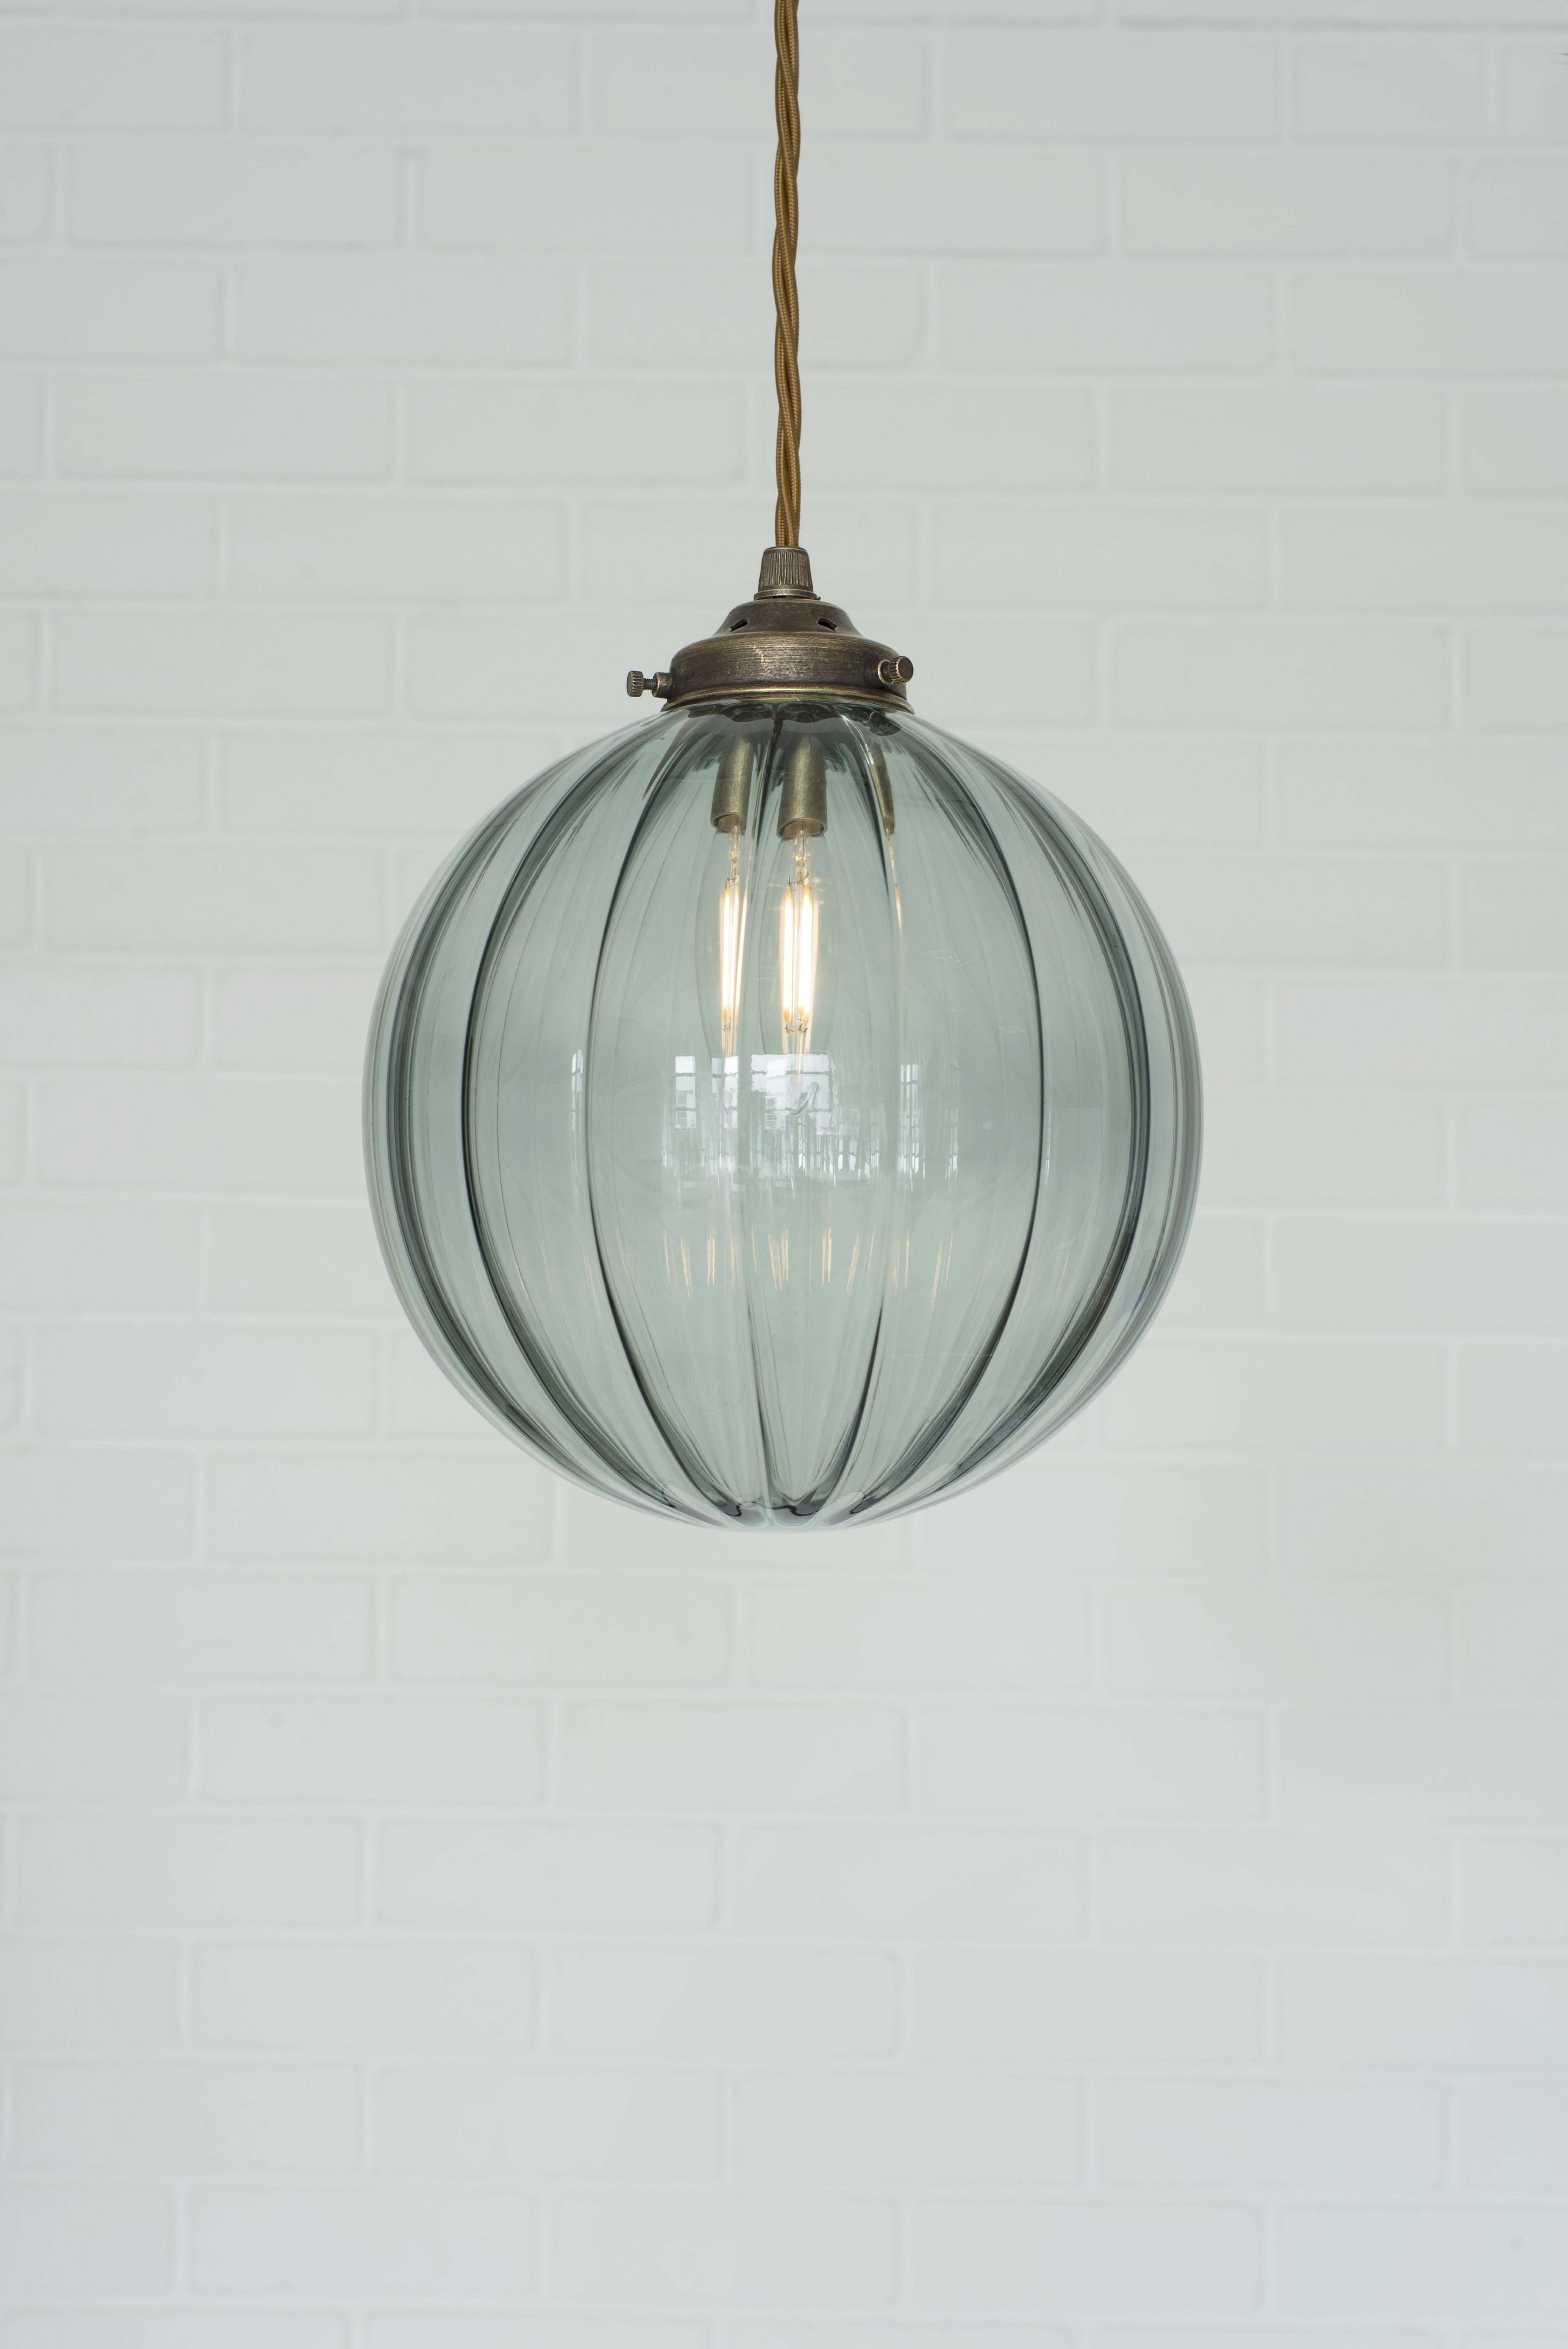 Fulbourn Greeny Blue Coloured Glass Pendant Lightin Polished Pendantlighting Glass Pendant Light Pendant Light Glass Lighting